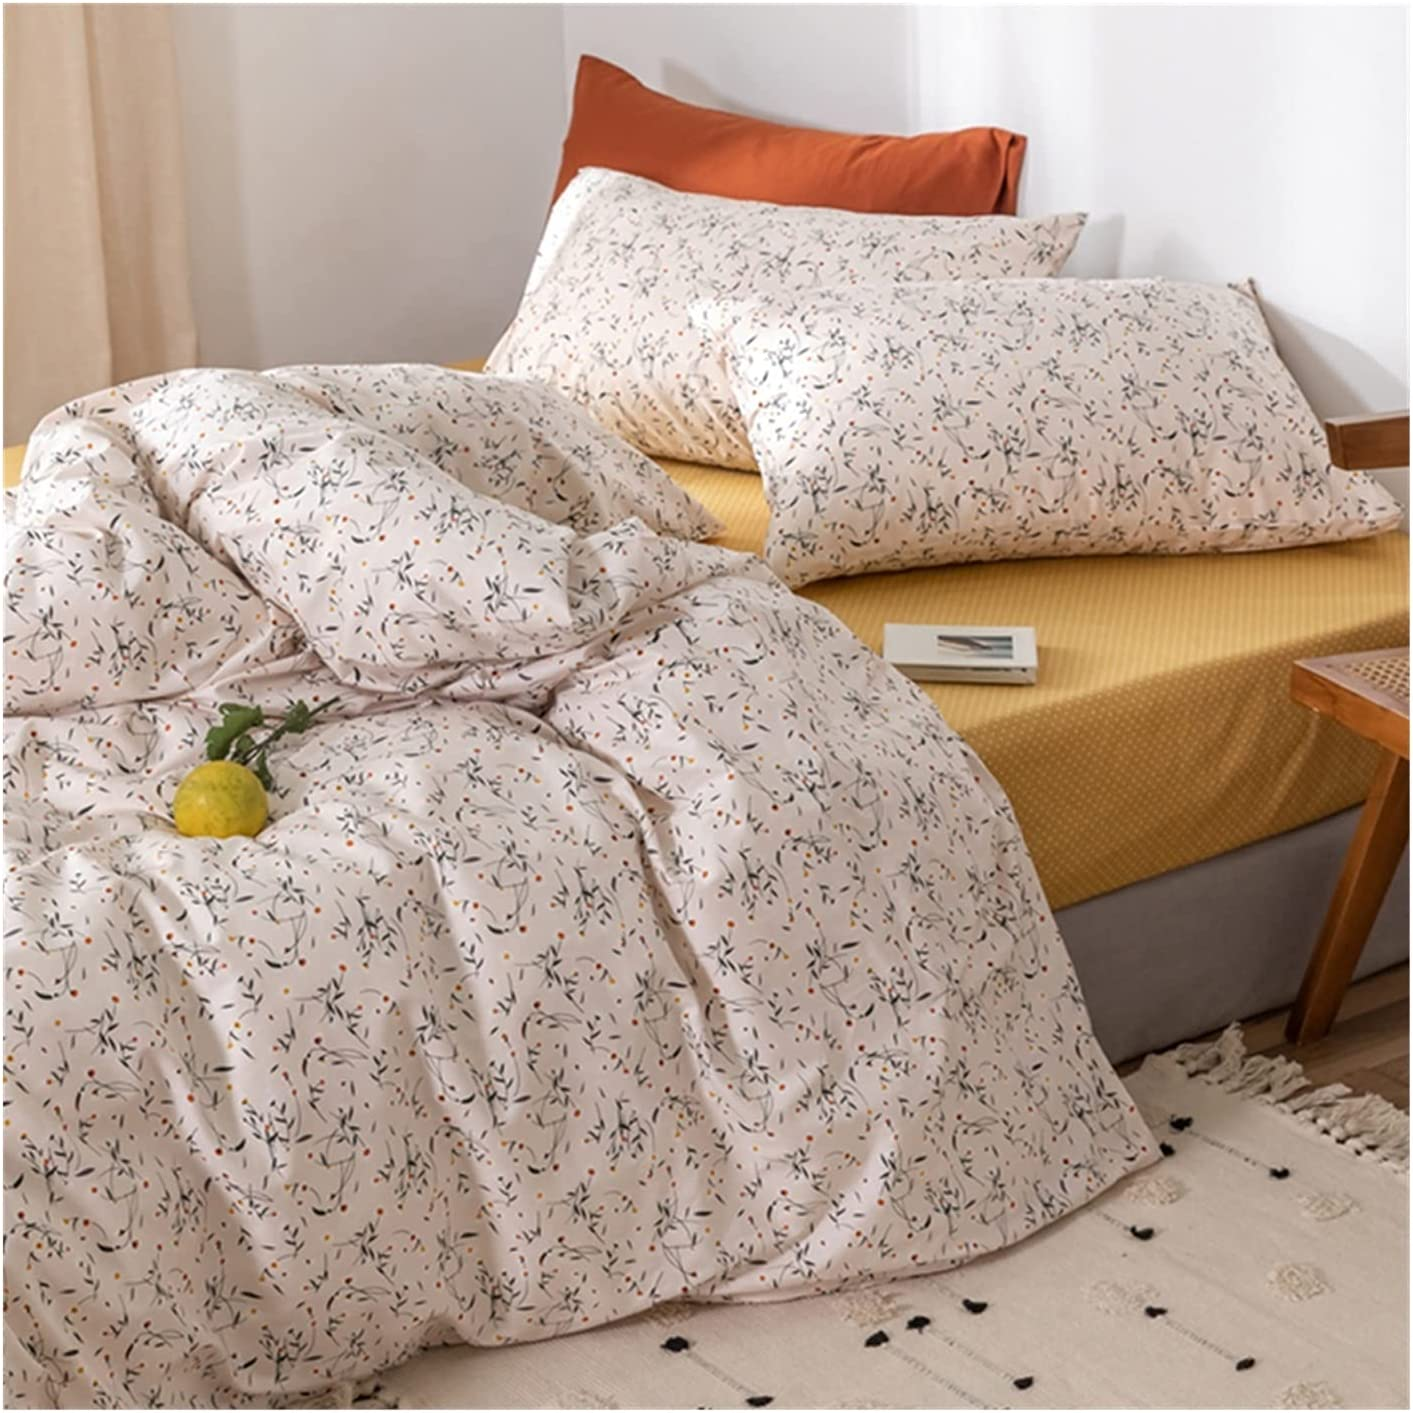 Ranking TOP12 MZP Quilt Duvet Cover Set with Queen 4pcs Bed Fitted Full Sales of SALE items from new works Sheets